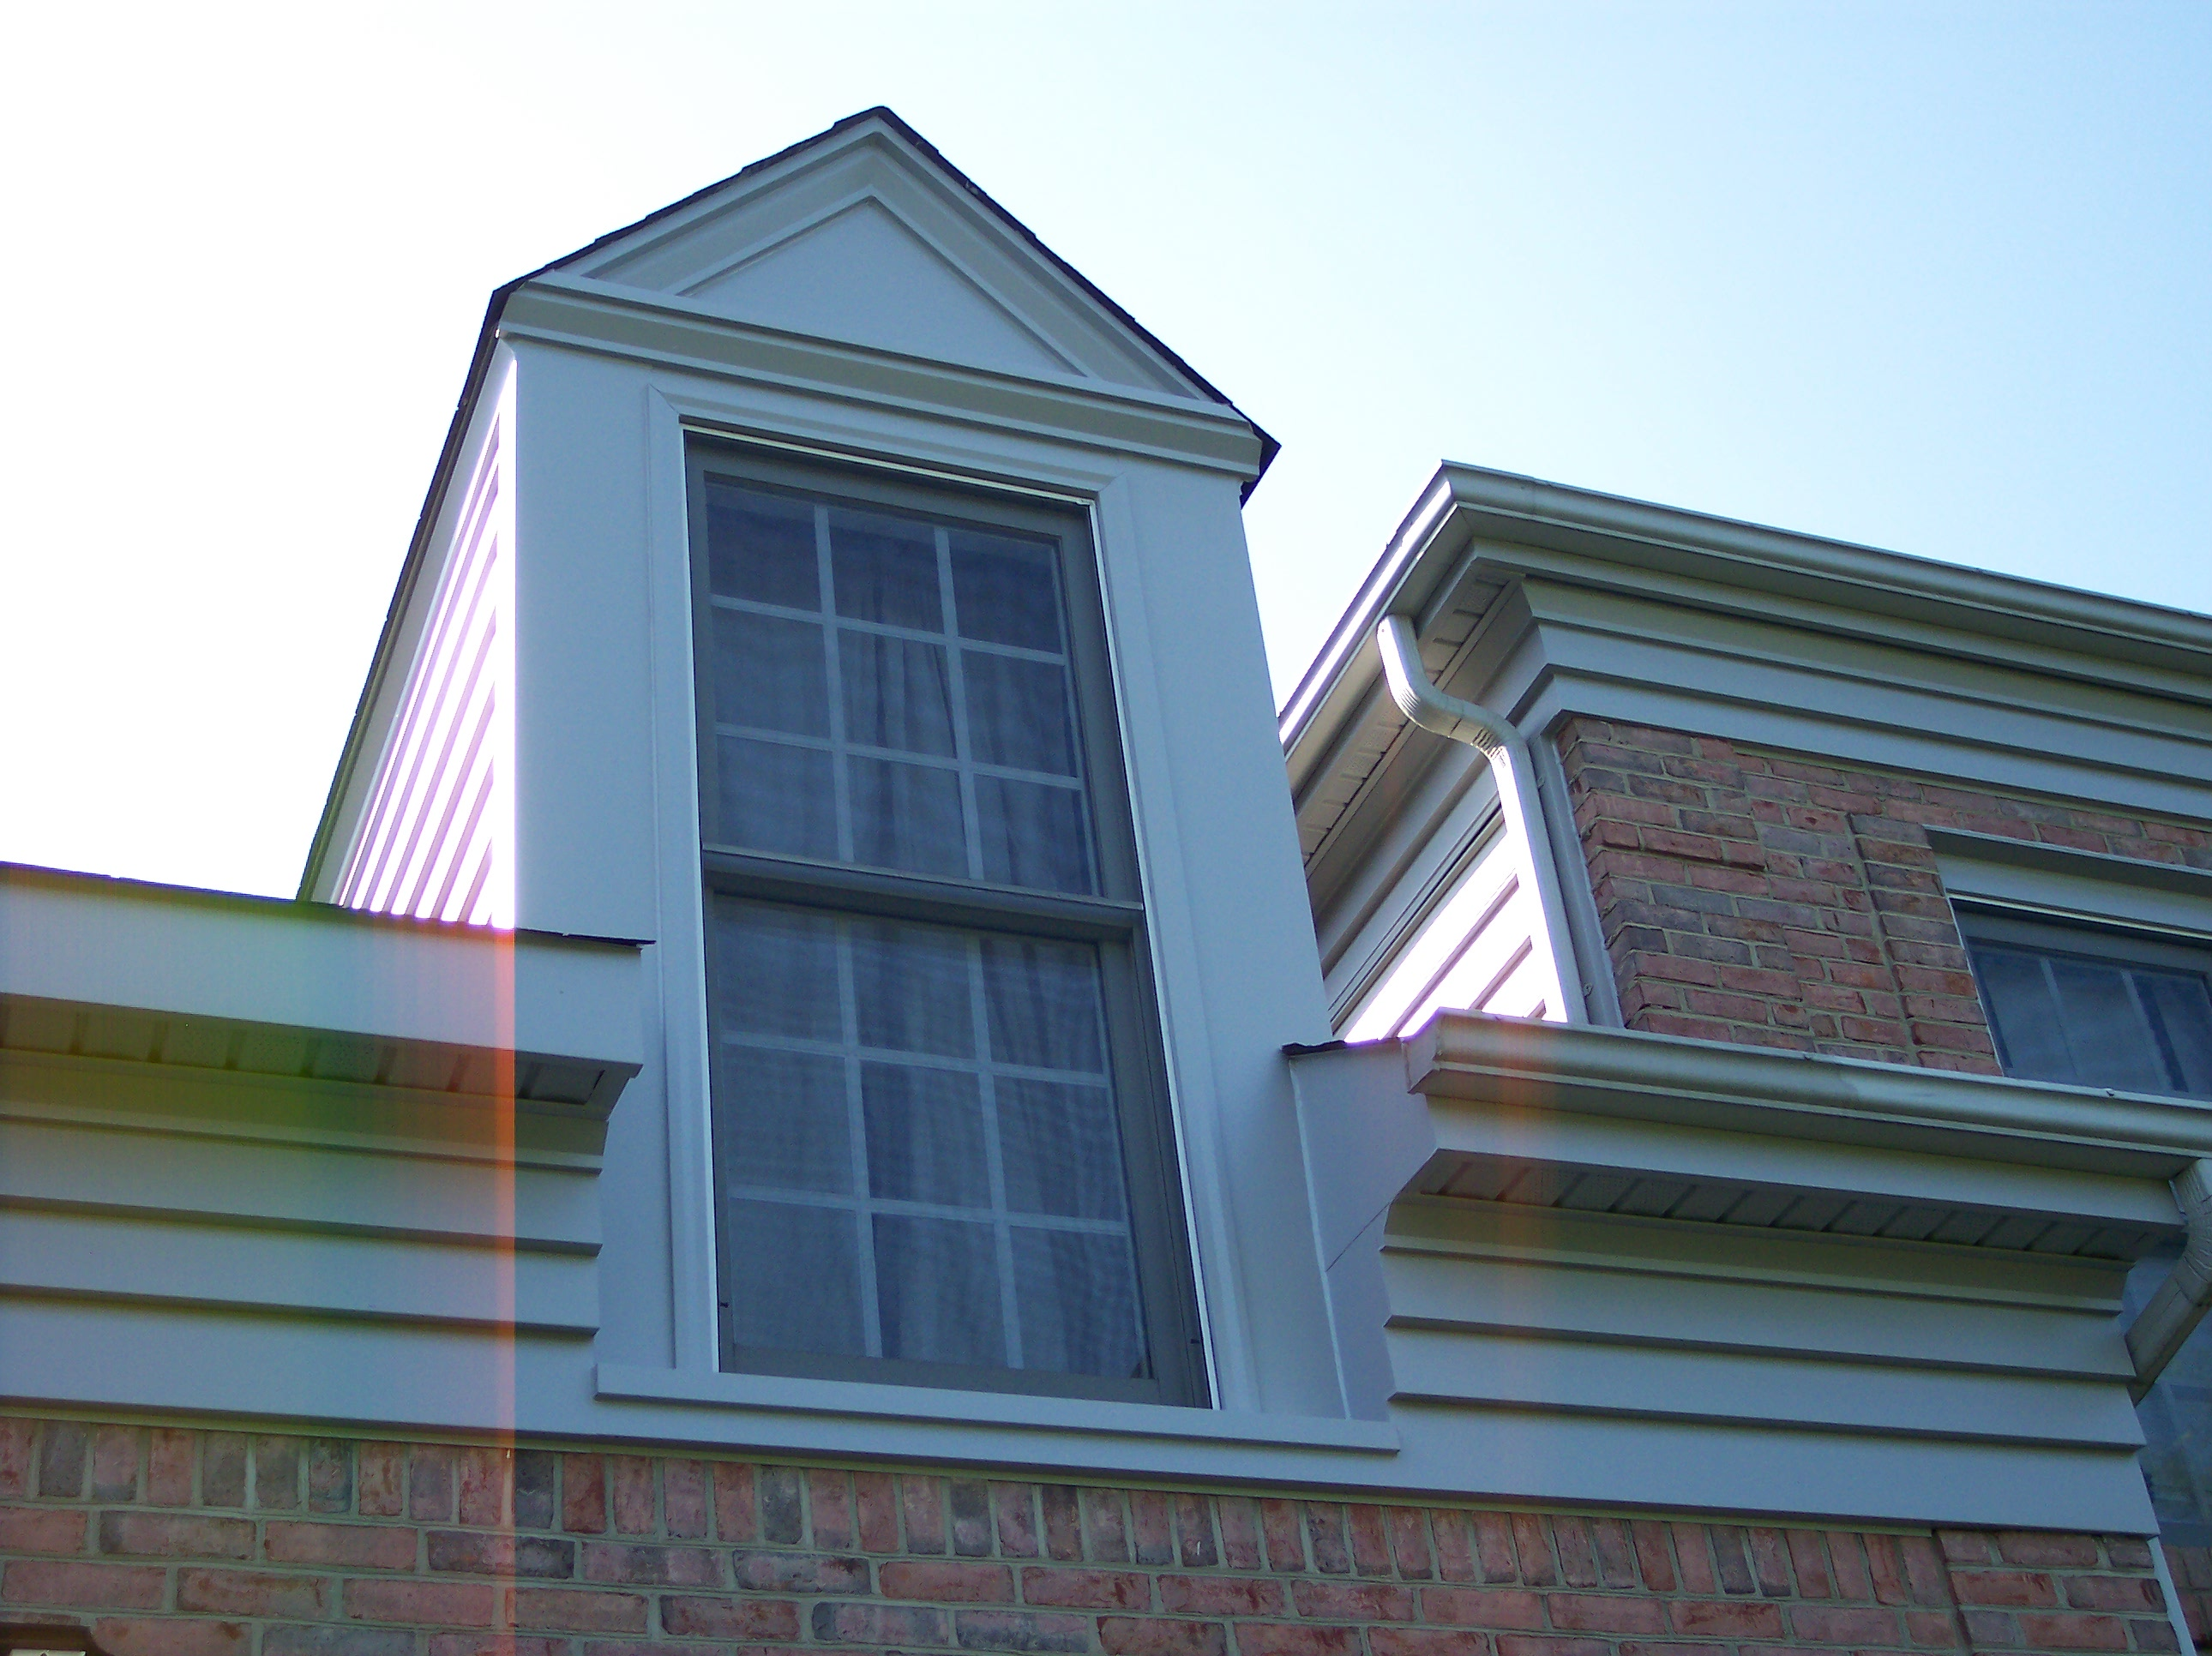 Installers association gaithersburg md 20878 angies list for 3999 roof